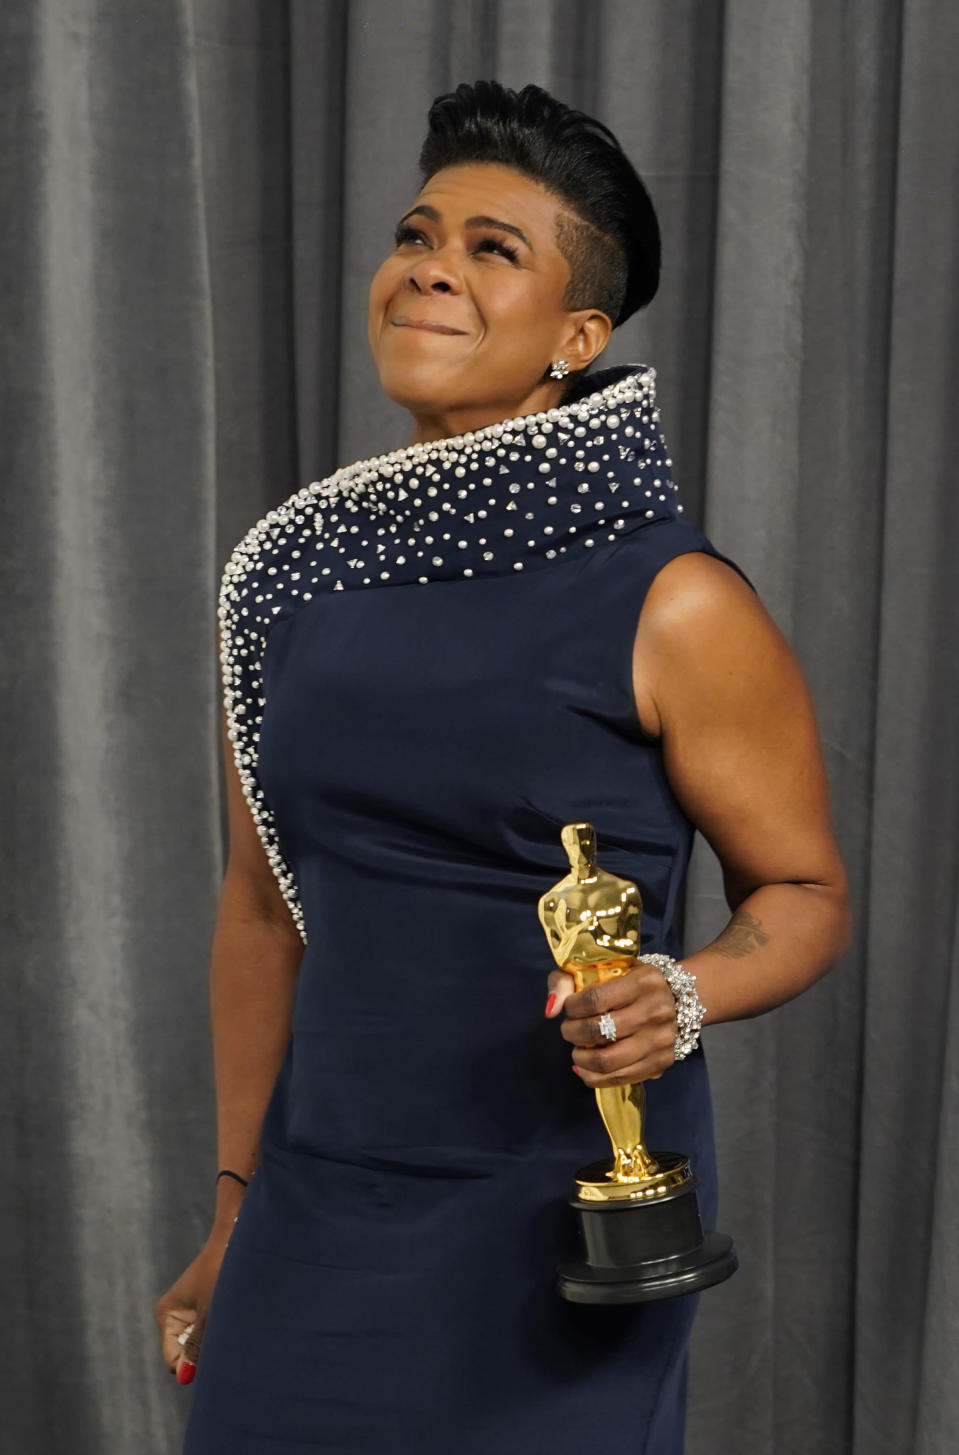 """Mia Neal, winner of the award for best makeup and hairstyling for """"Ma Rainey's Black Bottom,"""" poses in the press room at the Oscars on Sunday, April 25, 2021, at Union Station in Los Angeles. (AP Photo/Chris Pizzello, Pool)"""